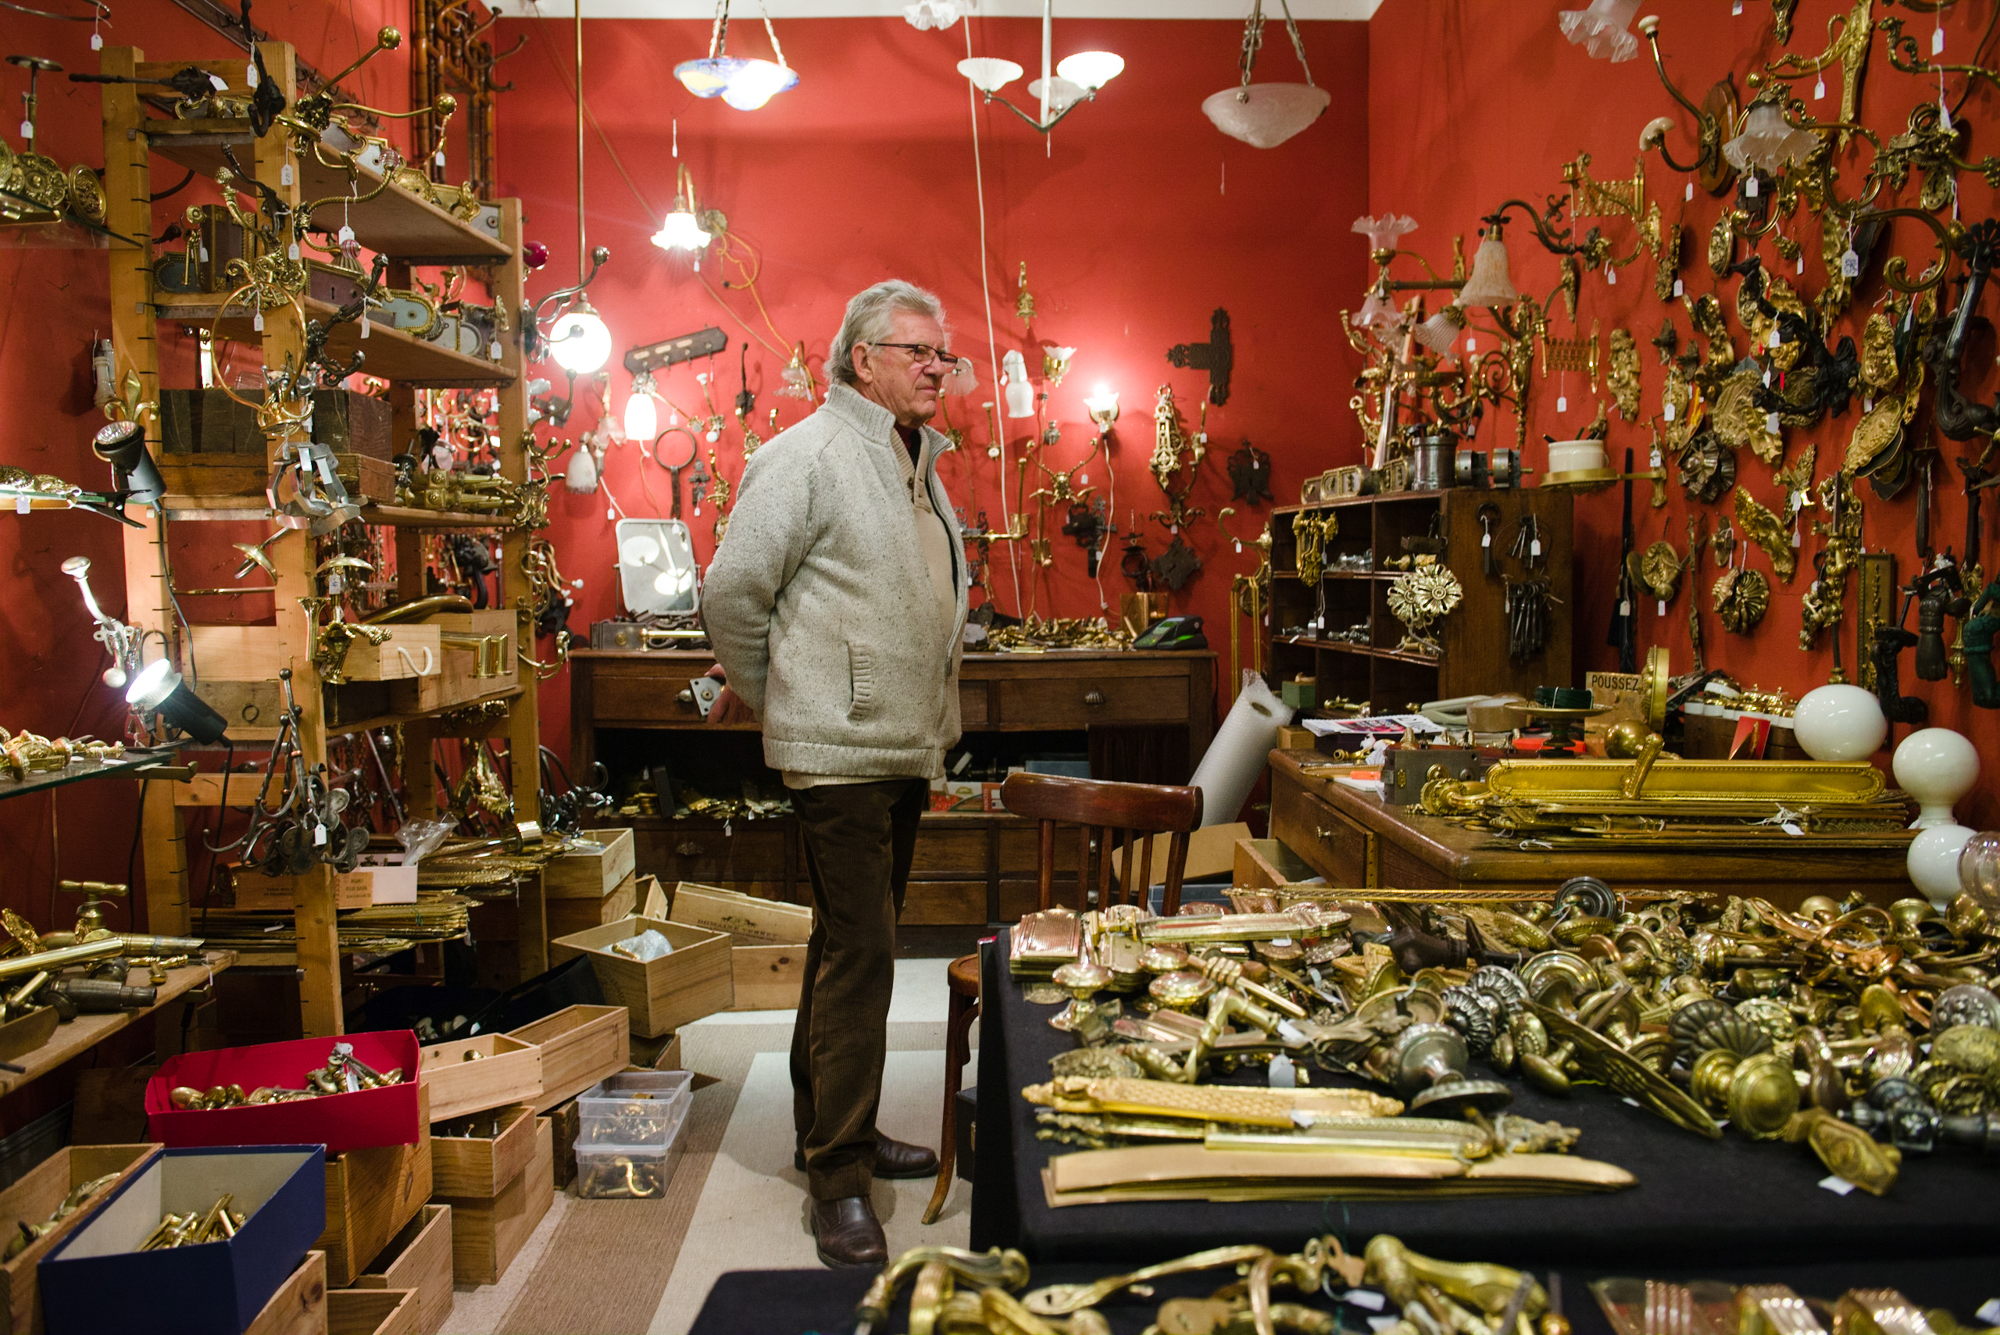 Jean-Pierre Jankovsky, Marché Serpette - Allée 6, Stand 6  Jean-Pierre specializes in antique doorknobs and handles as well as everything else associated with them, he has run his stand for 32 years.  PHOTOGRAPHY: William Lounsbury • Nikon D800 • AF-S NIKKOR 24-70mm Ƒ/2.8G ED @ 27MM • Ƒ/4 • 1/40 • ISO 800